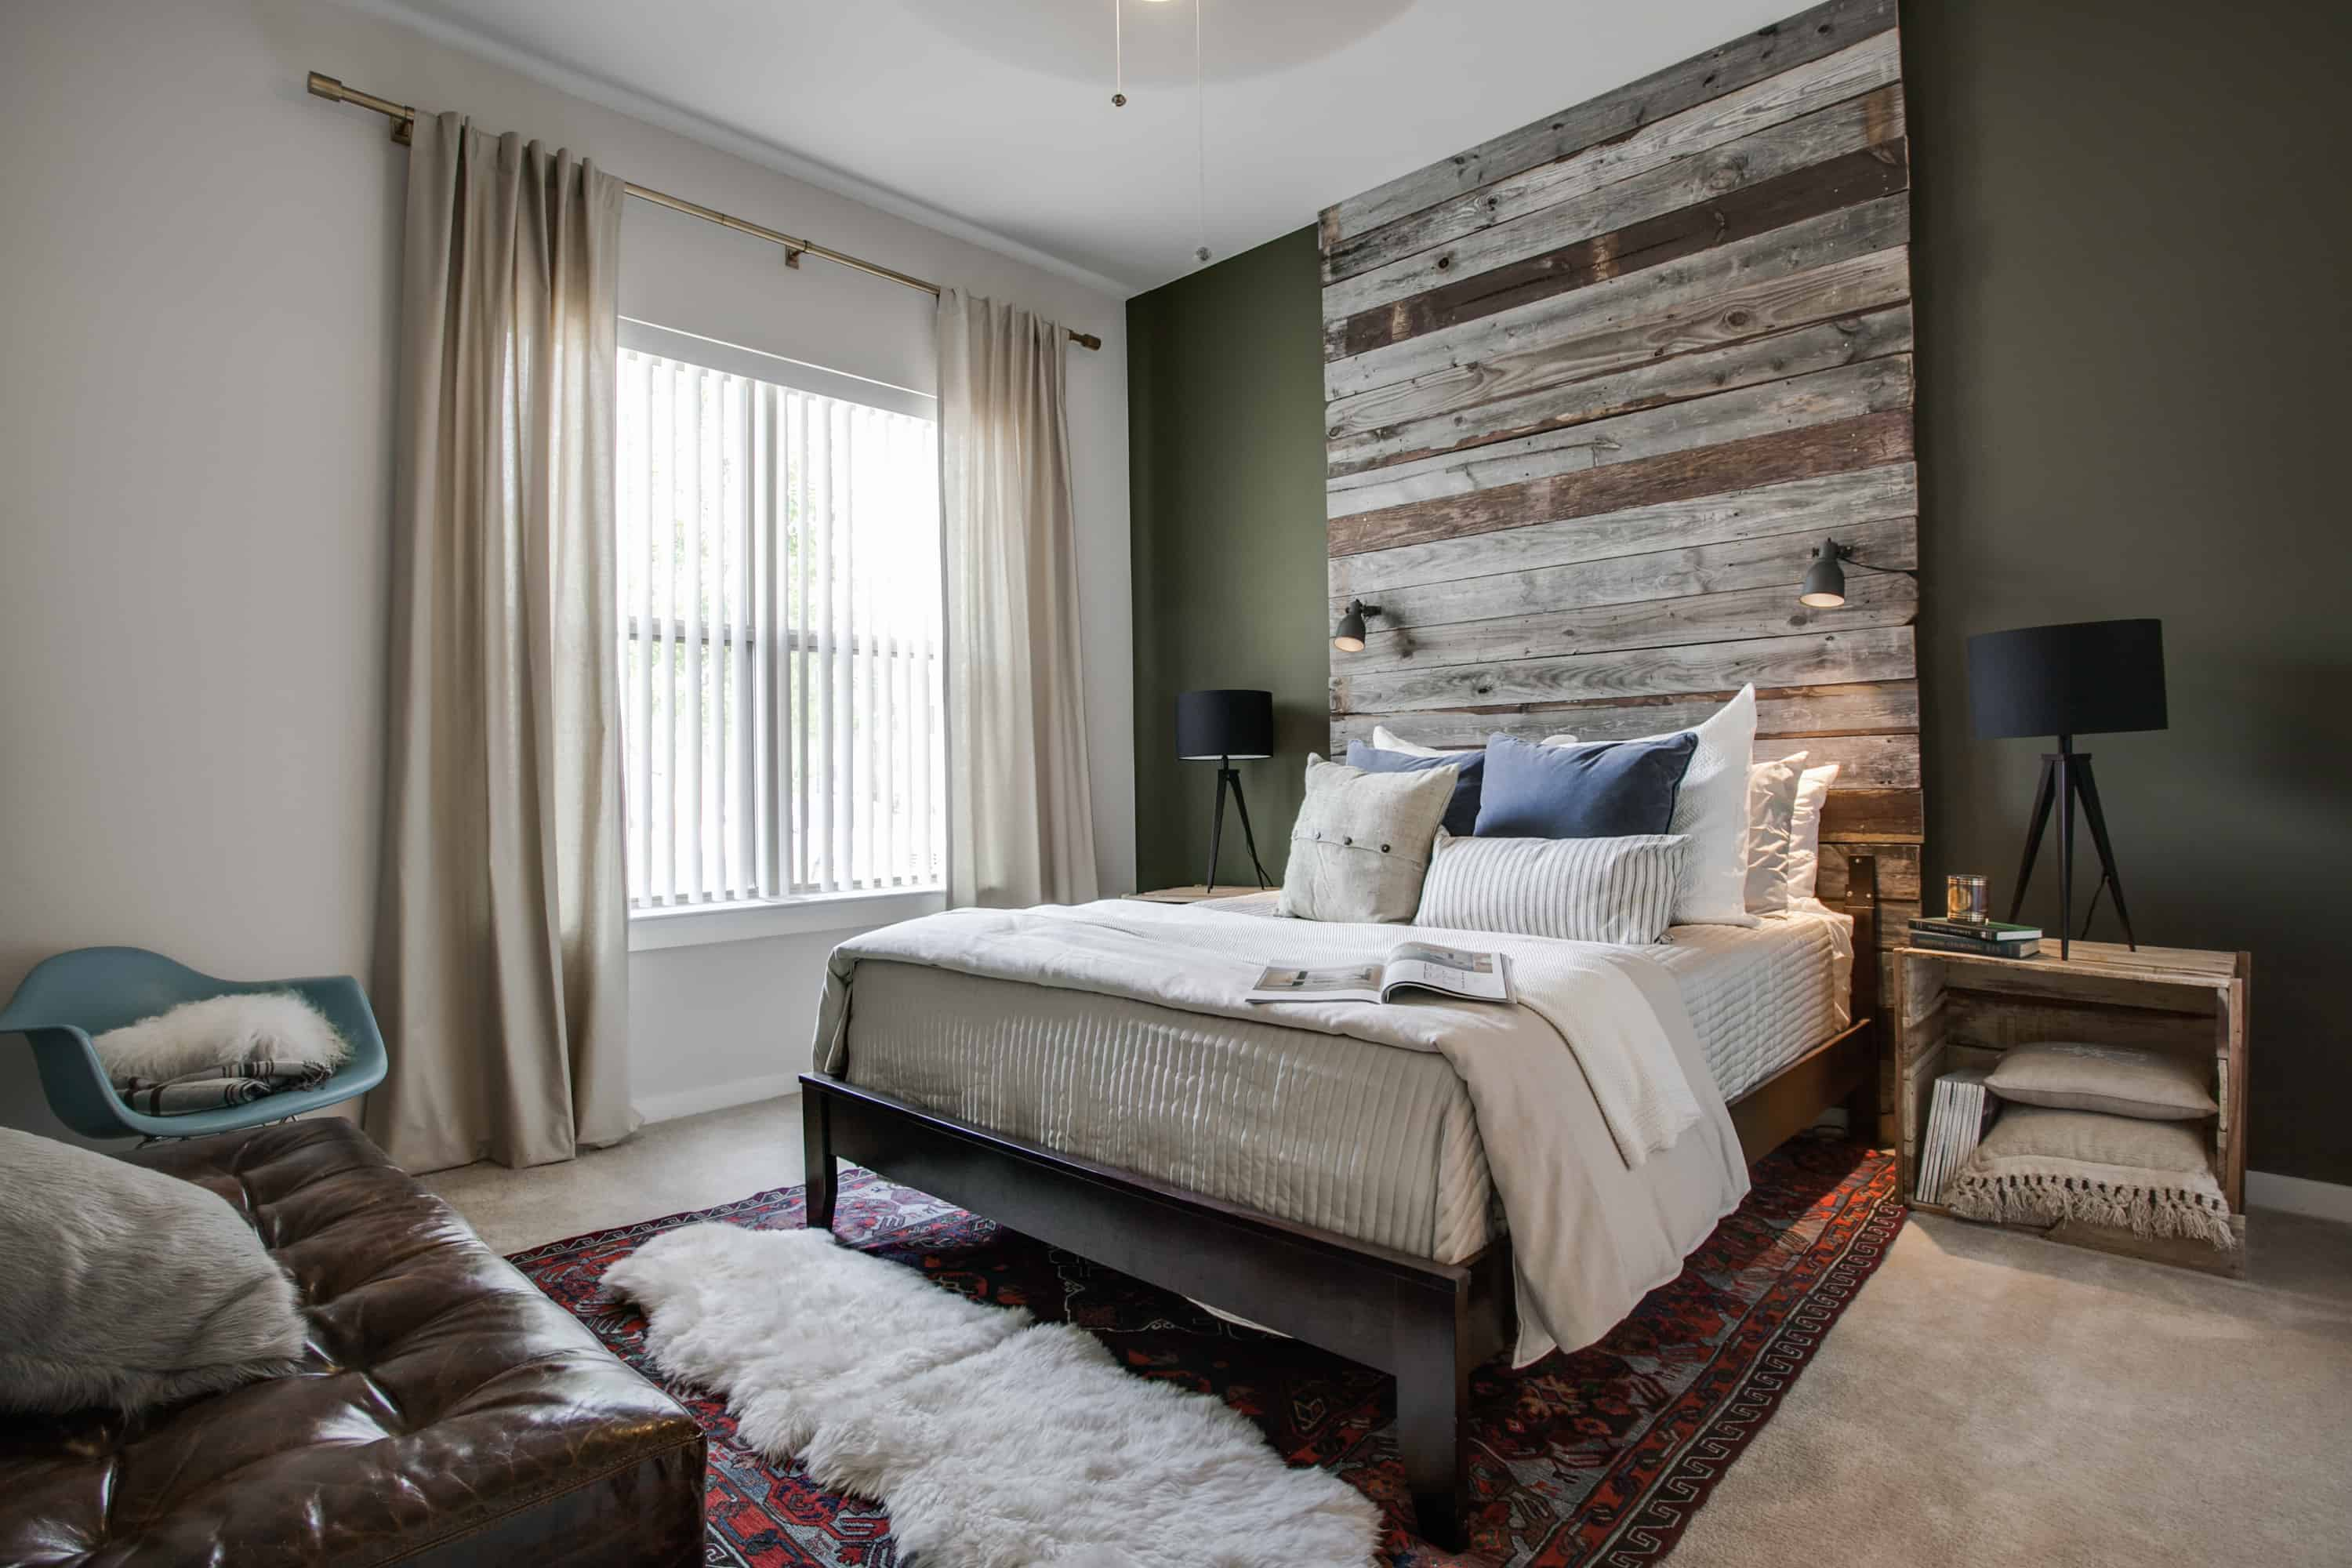 29 masterful bedroom design ideas for guys · #1. The Beauty Of A Masculine Bedroom Decor